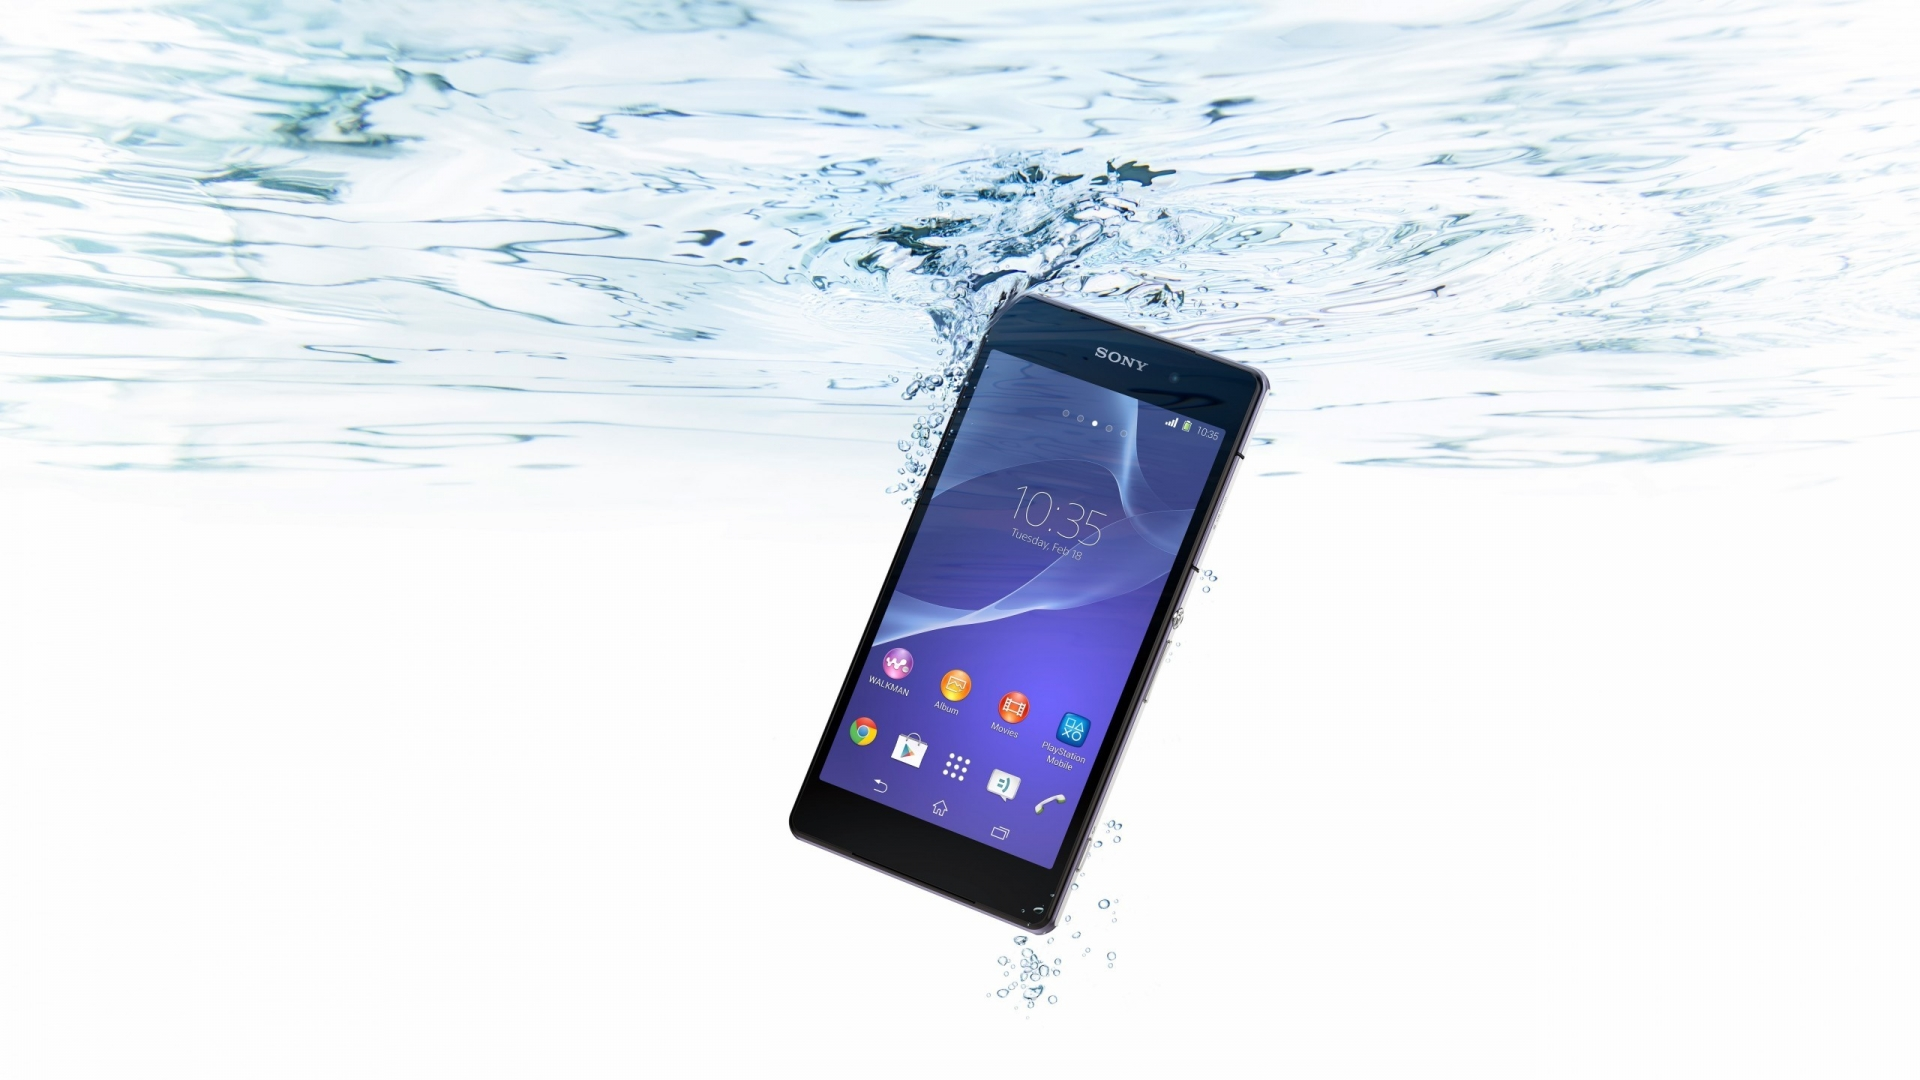 Sony Xperia Z2 Waterproof for 1920 x 1080 HDTV 1080p resolution